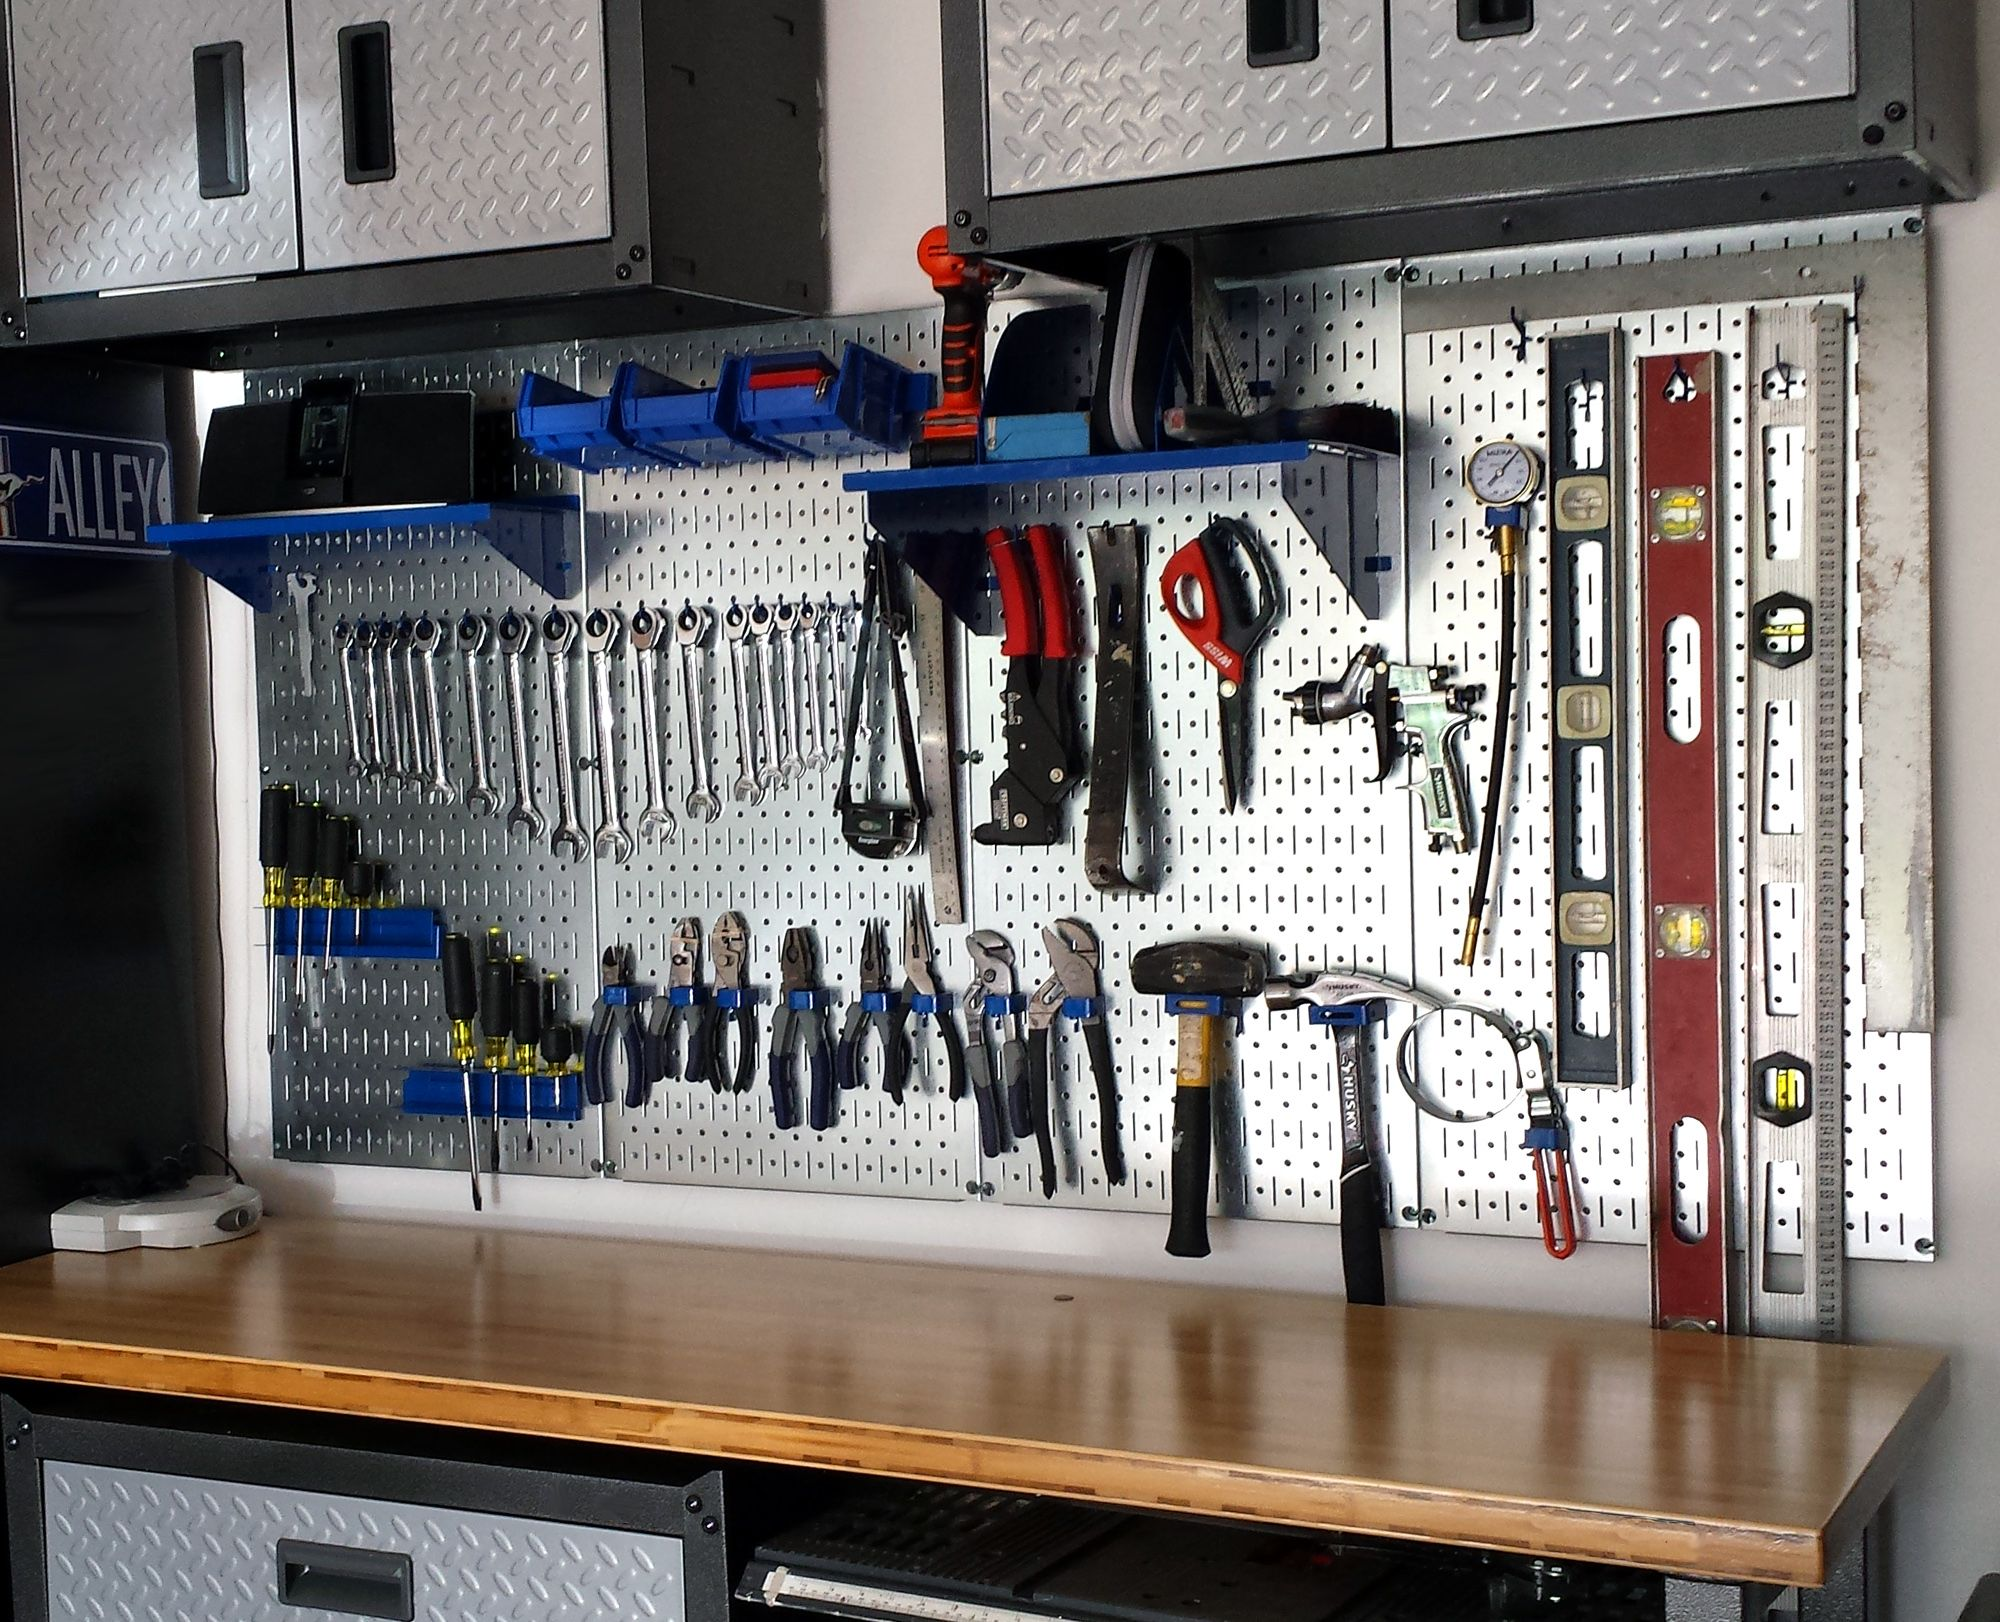 pegboard ideas for garages - Wall Control Metal Pegboard for garage tool storage and